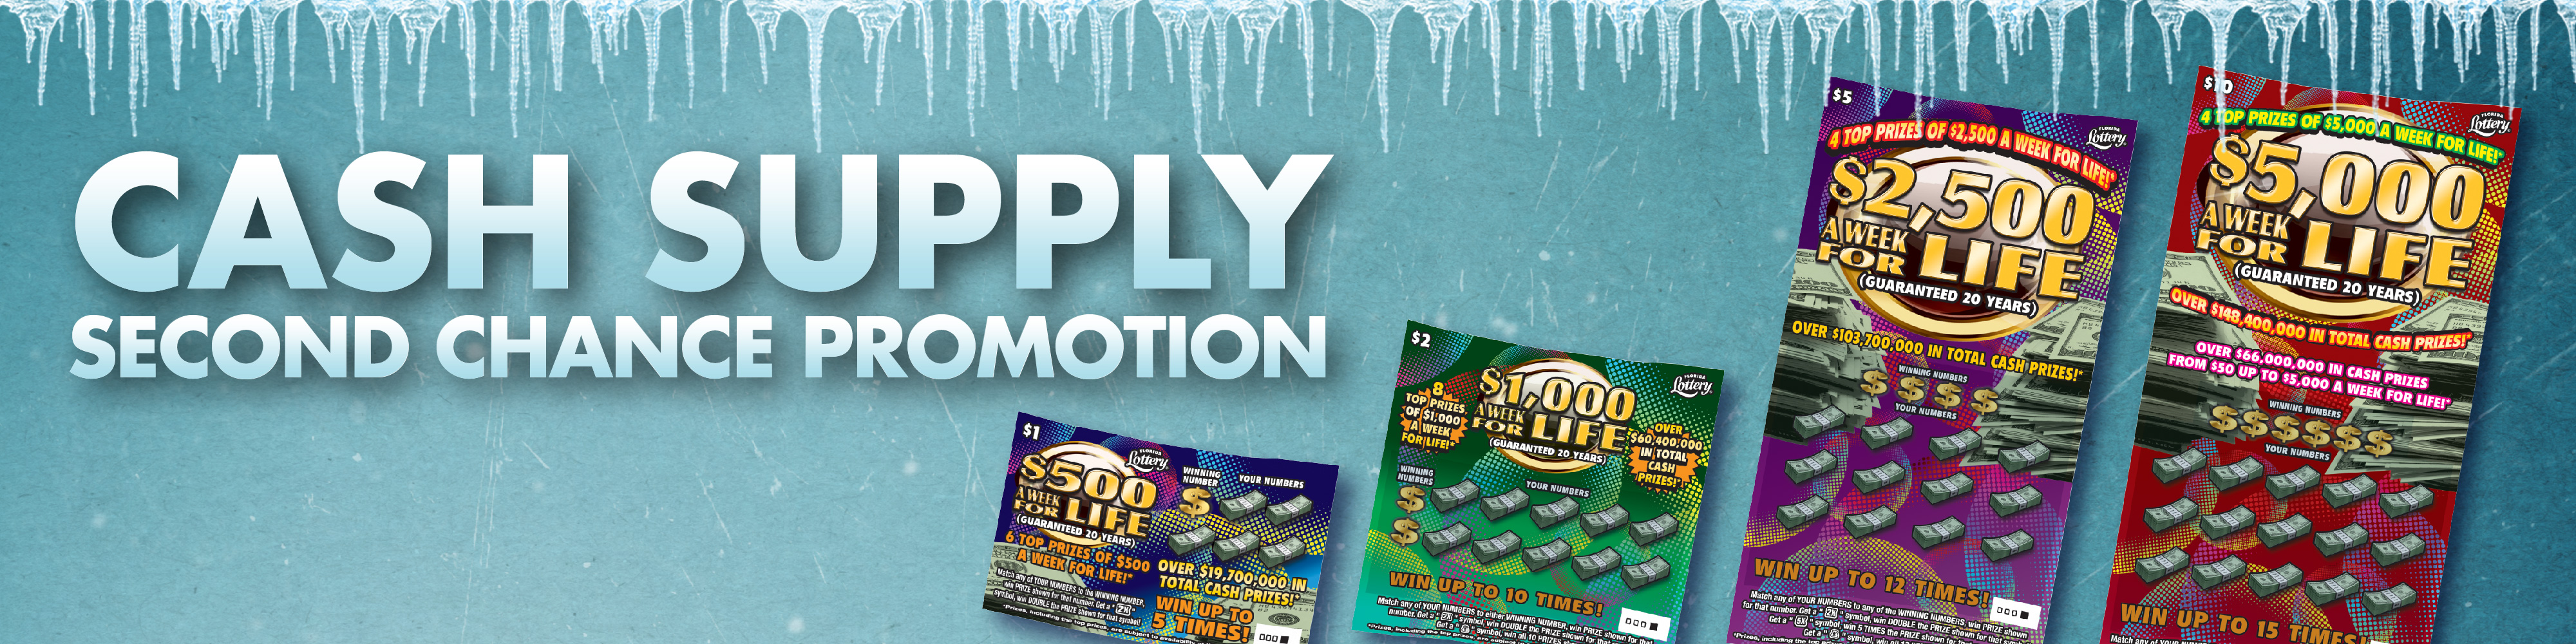 Winners - CASH SUPPLY - Florida Lottery Second Chance